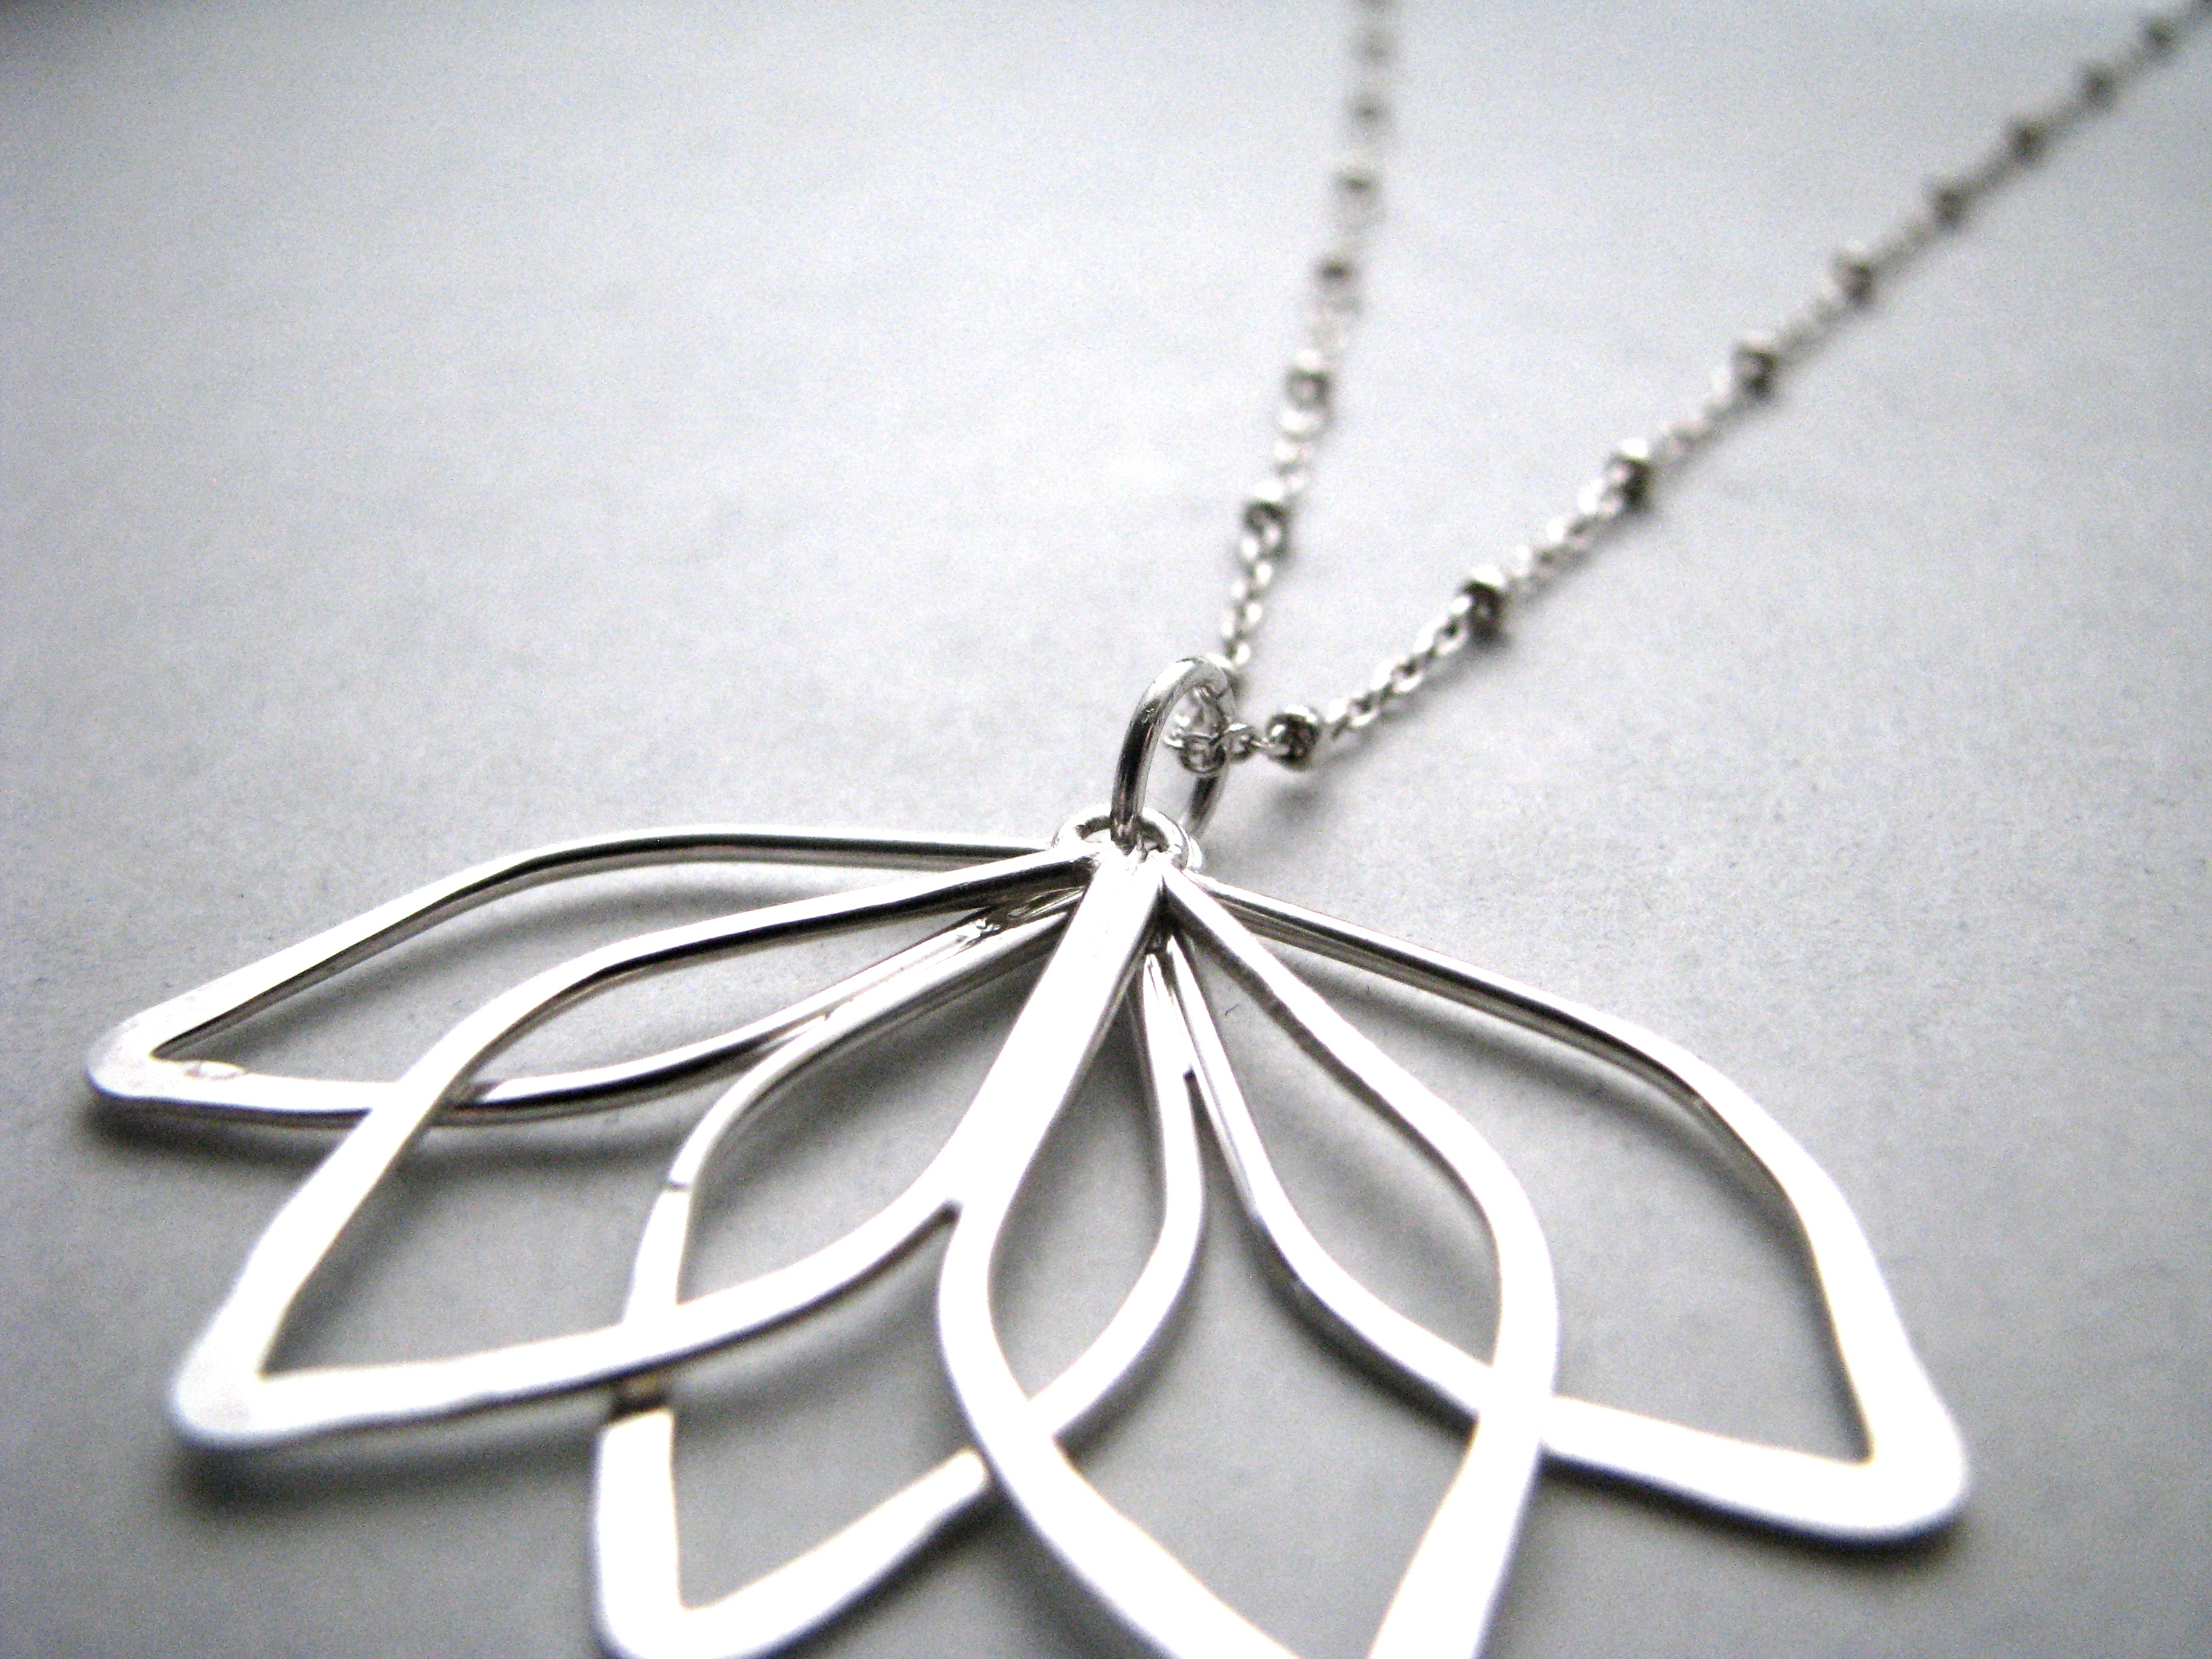 Summer Petals necklace